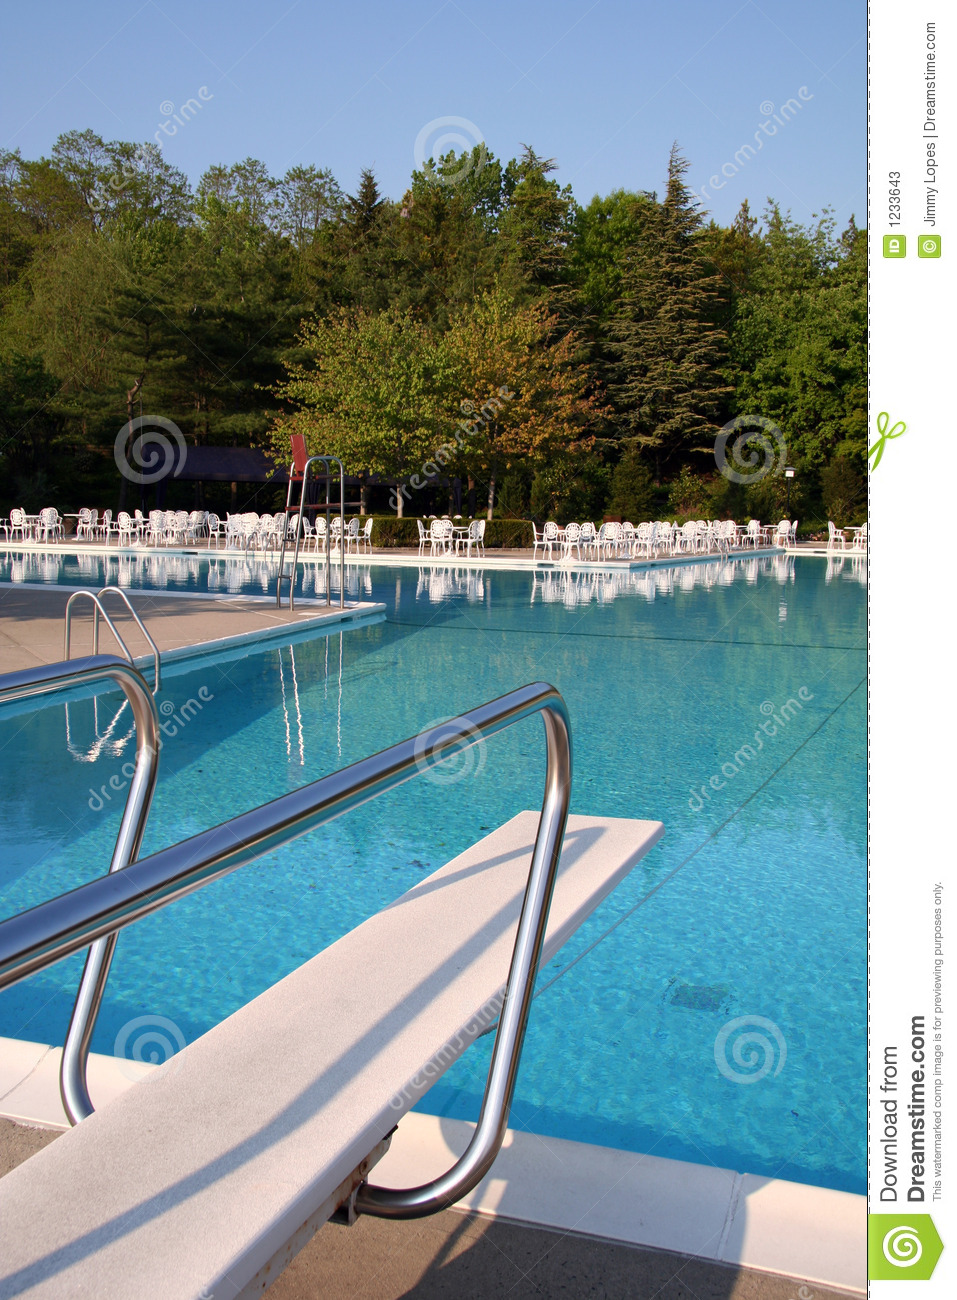 Pool With Diving Board Stock Photos Image 1233643